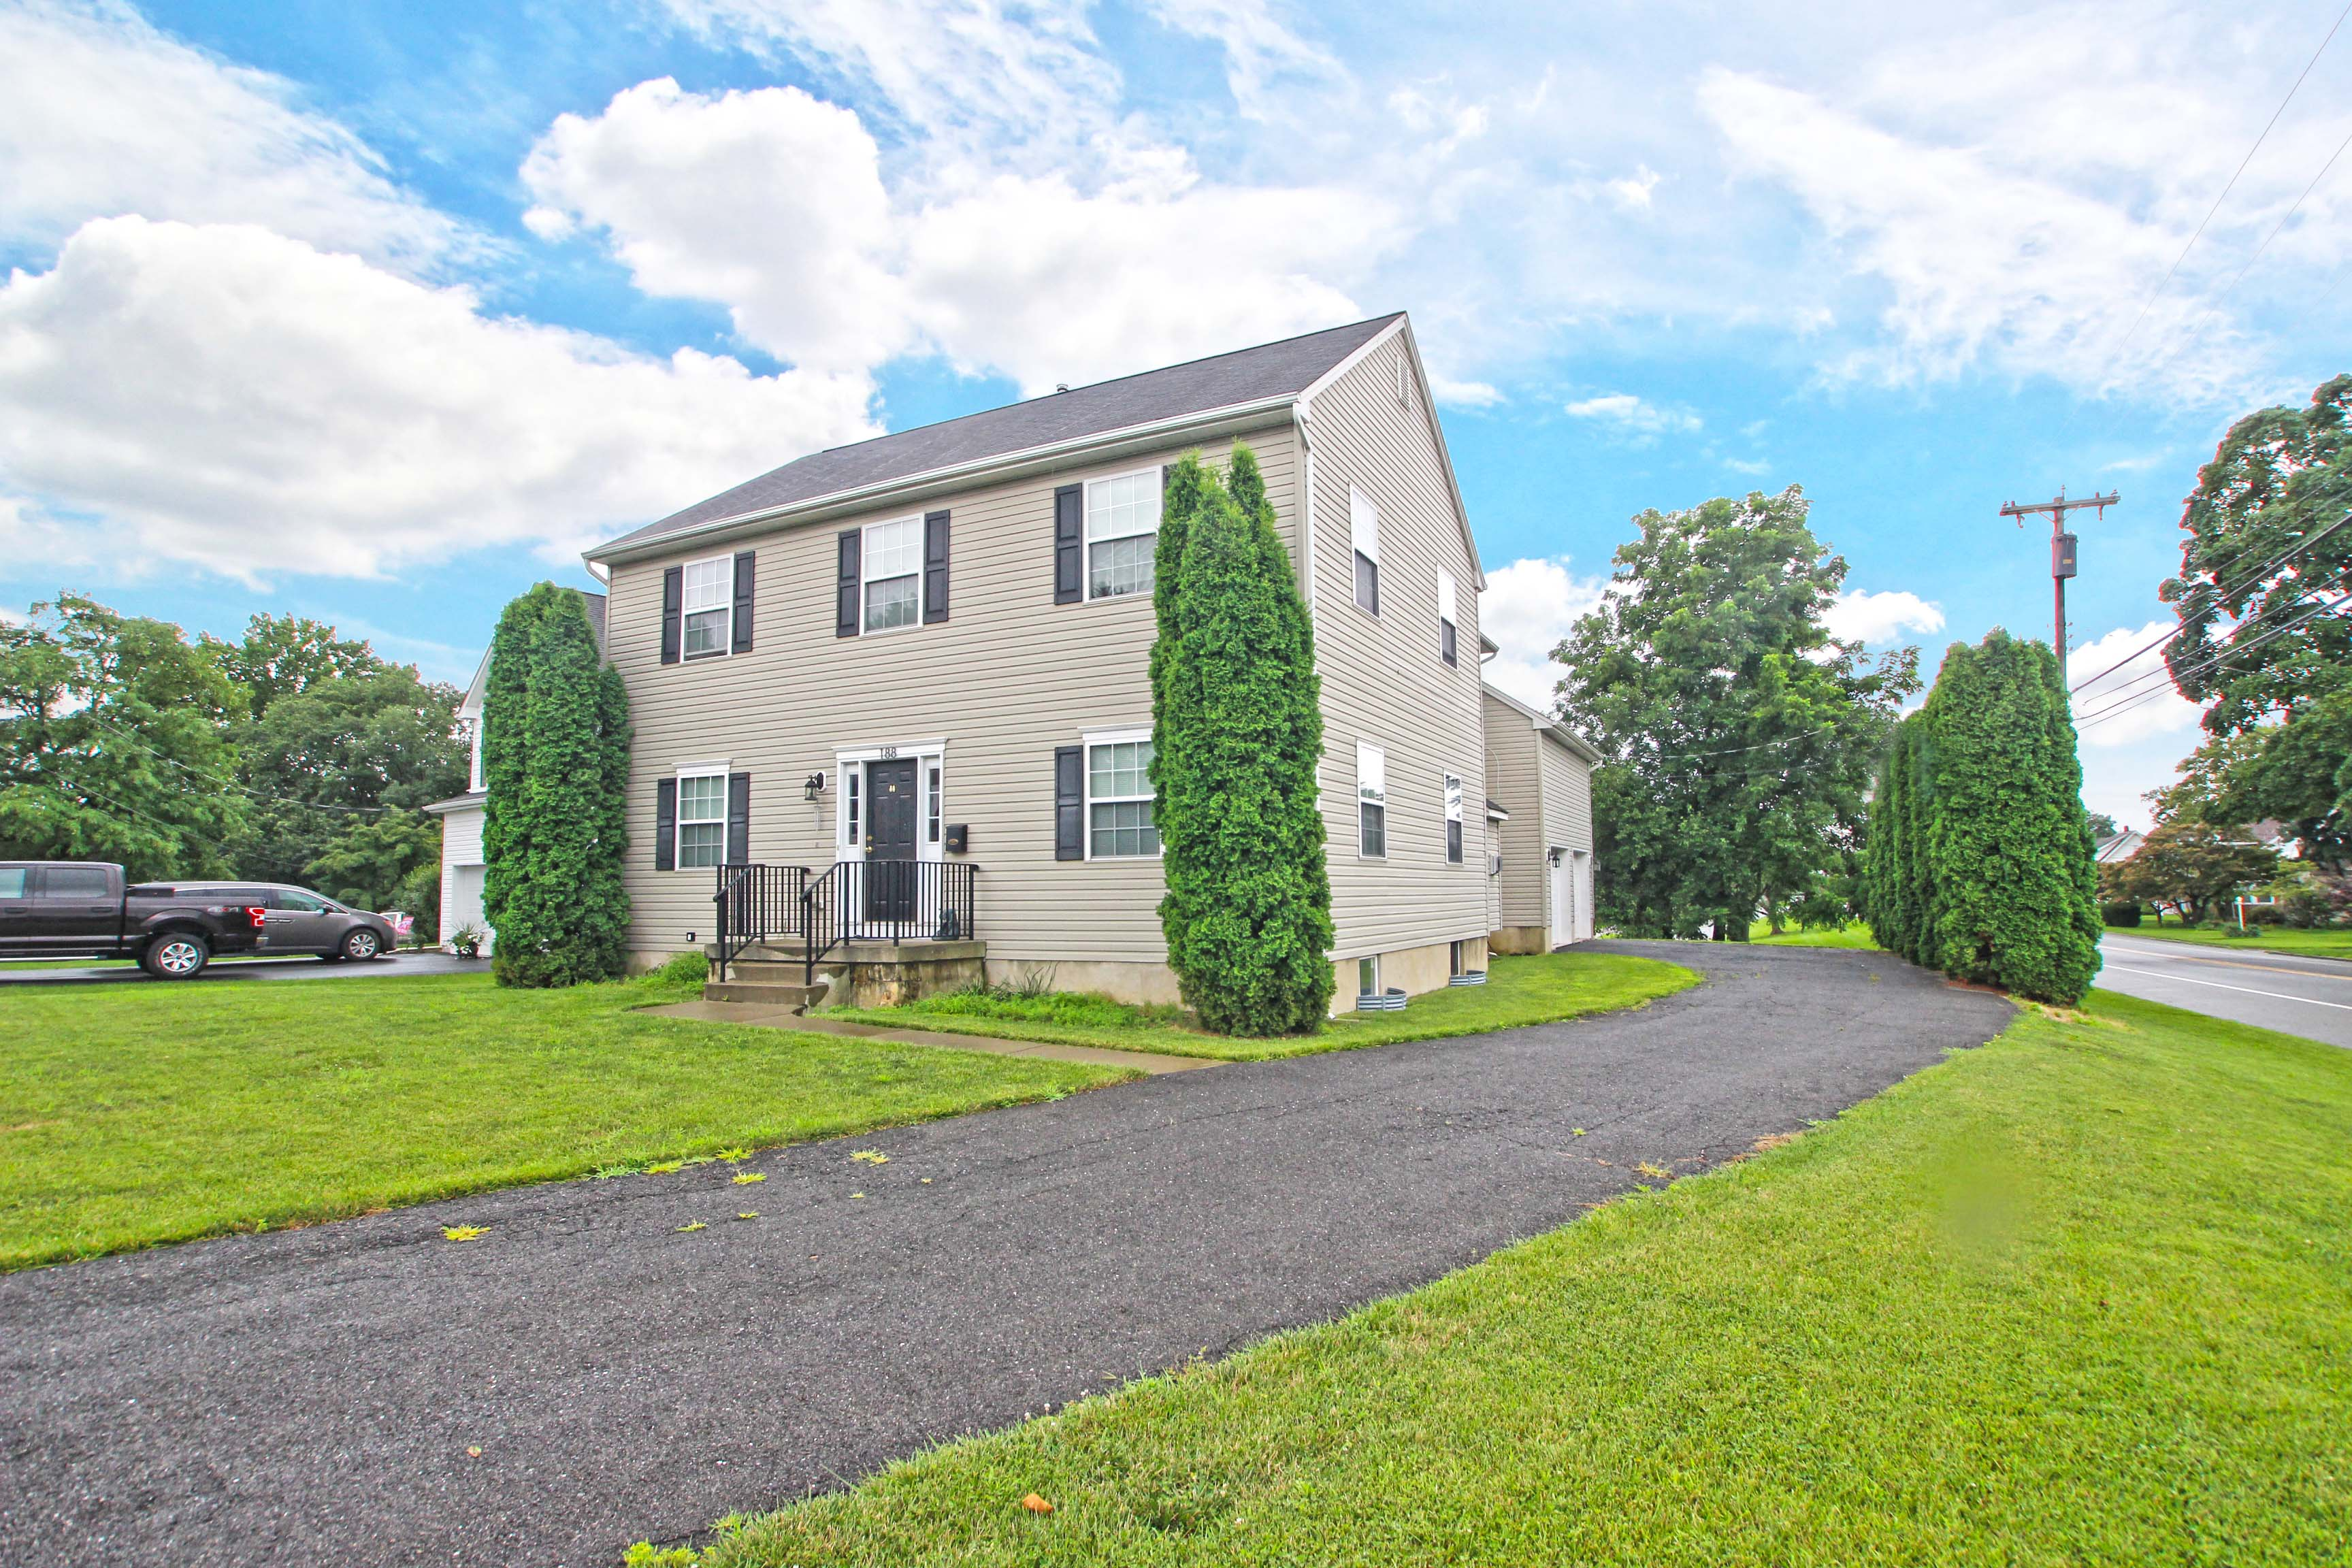 Phillipsburg Home For Sale Just Listed!